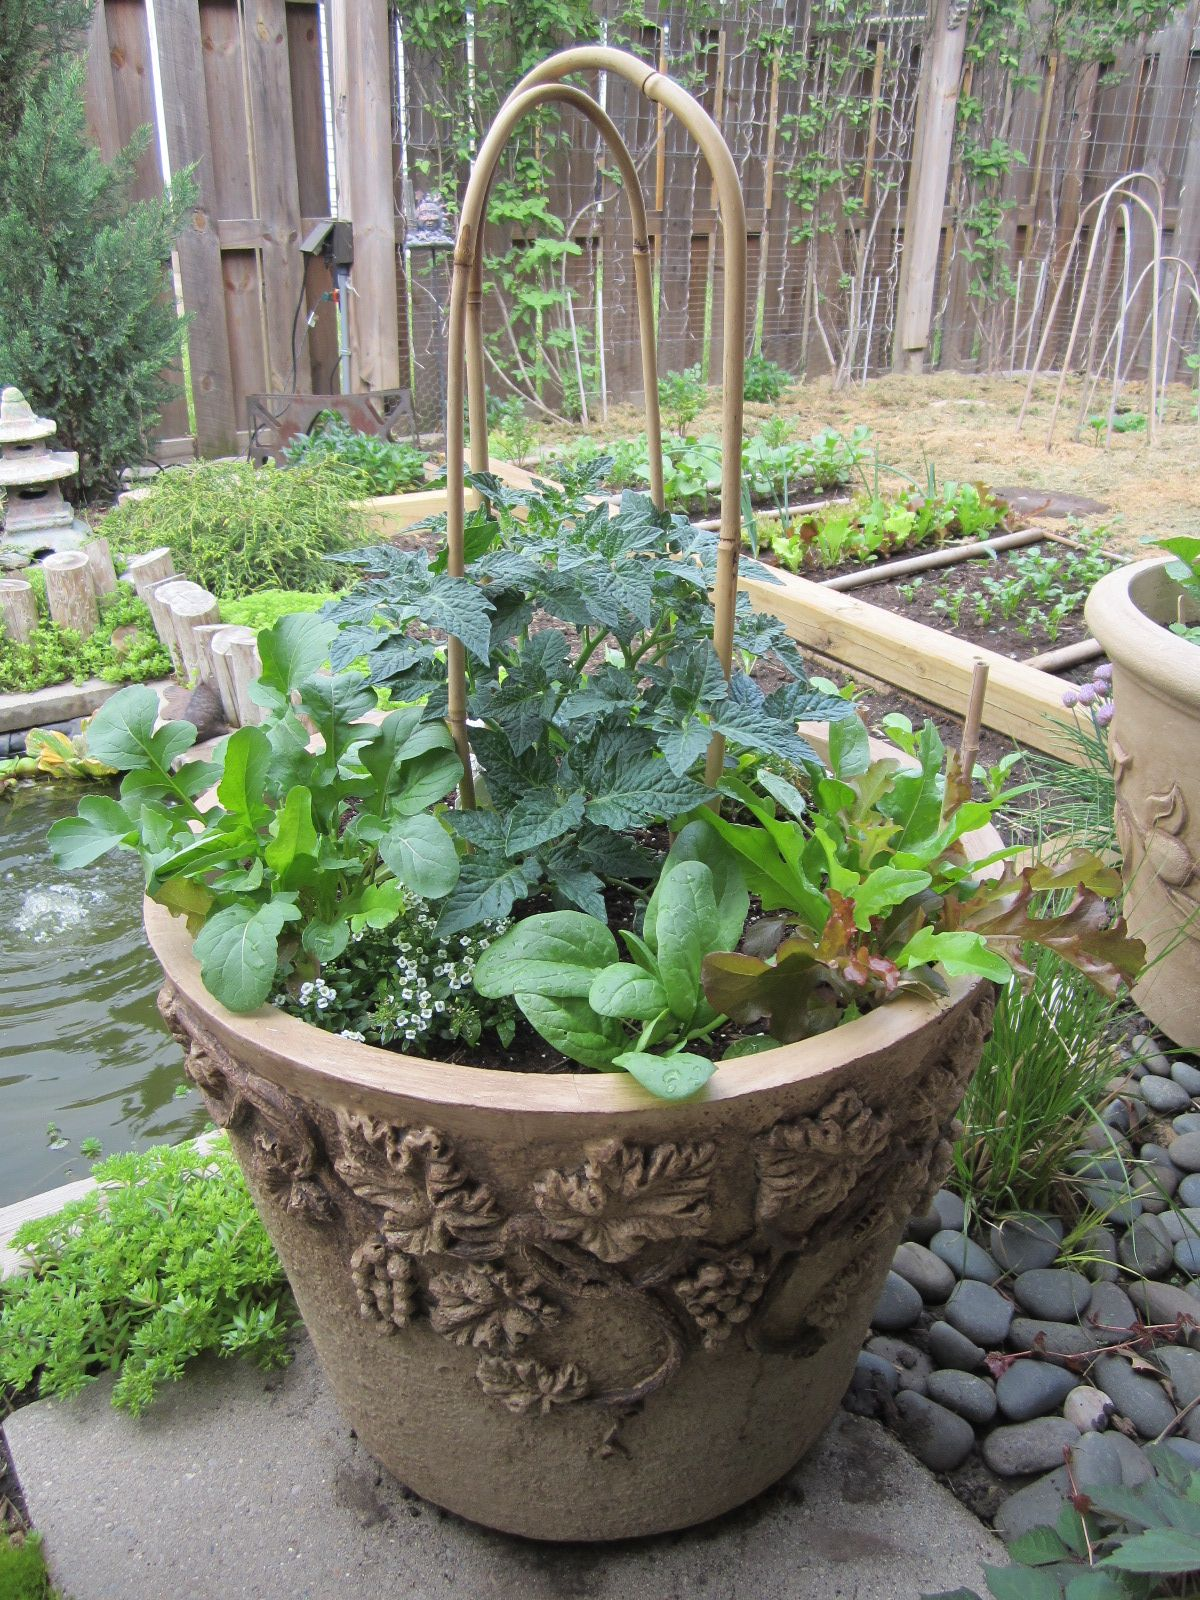 How to grow tomatoes with other veggies all in the same pot! #PrettyVegetablesInPots #ContainerGardeningWithVegetables